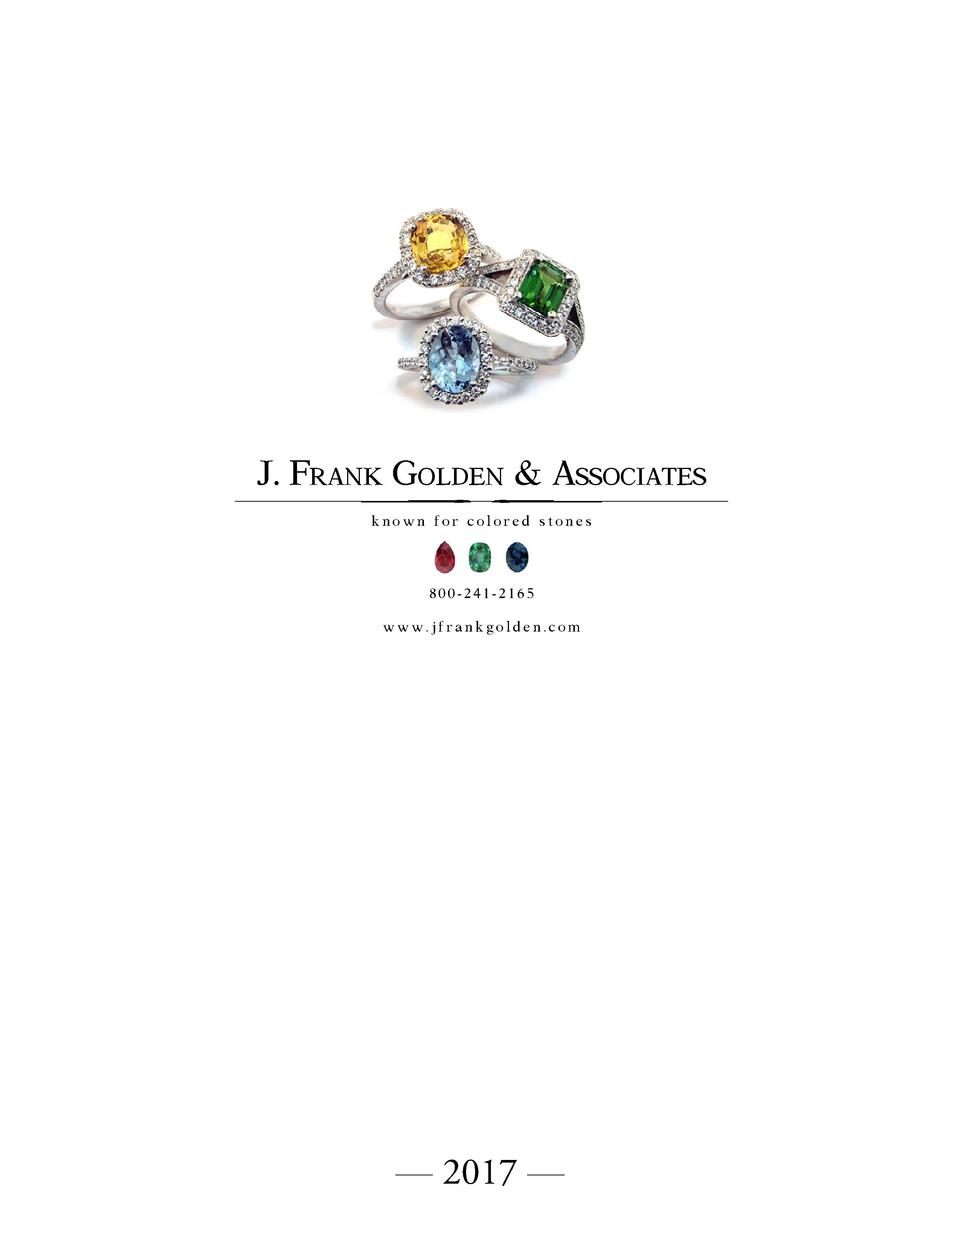 J Frank Golden 2017 Catalog Natural Orange Citrine 13ct Associates Known For Colored Stones